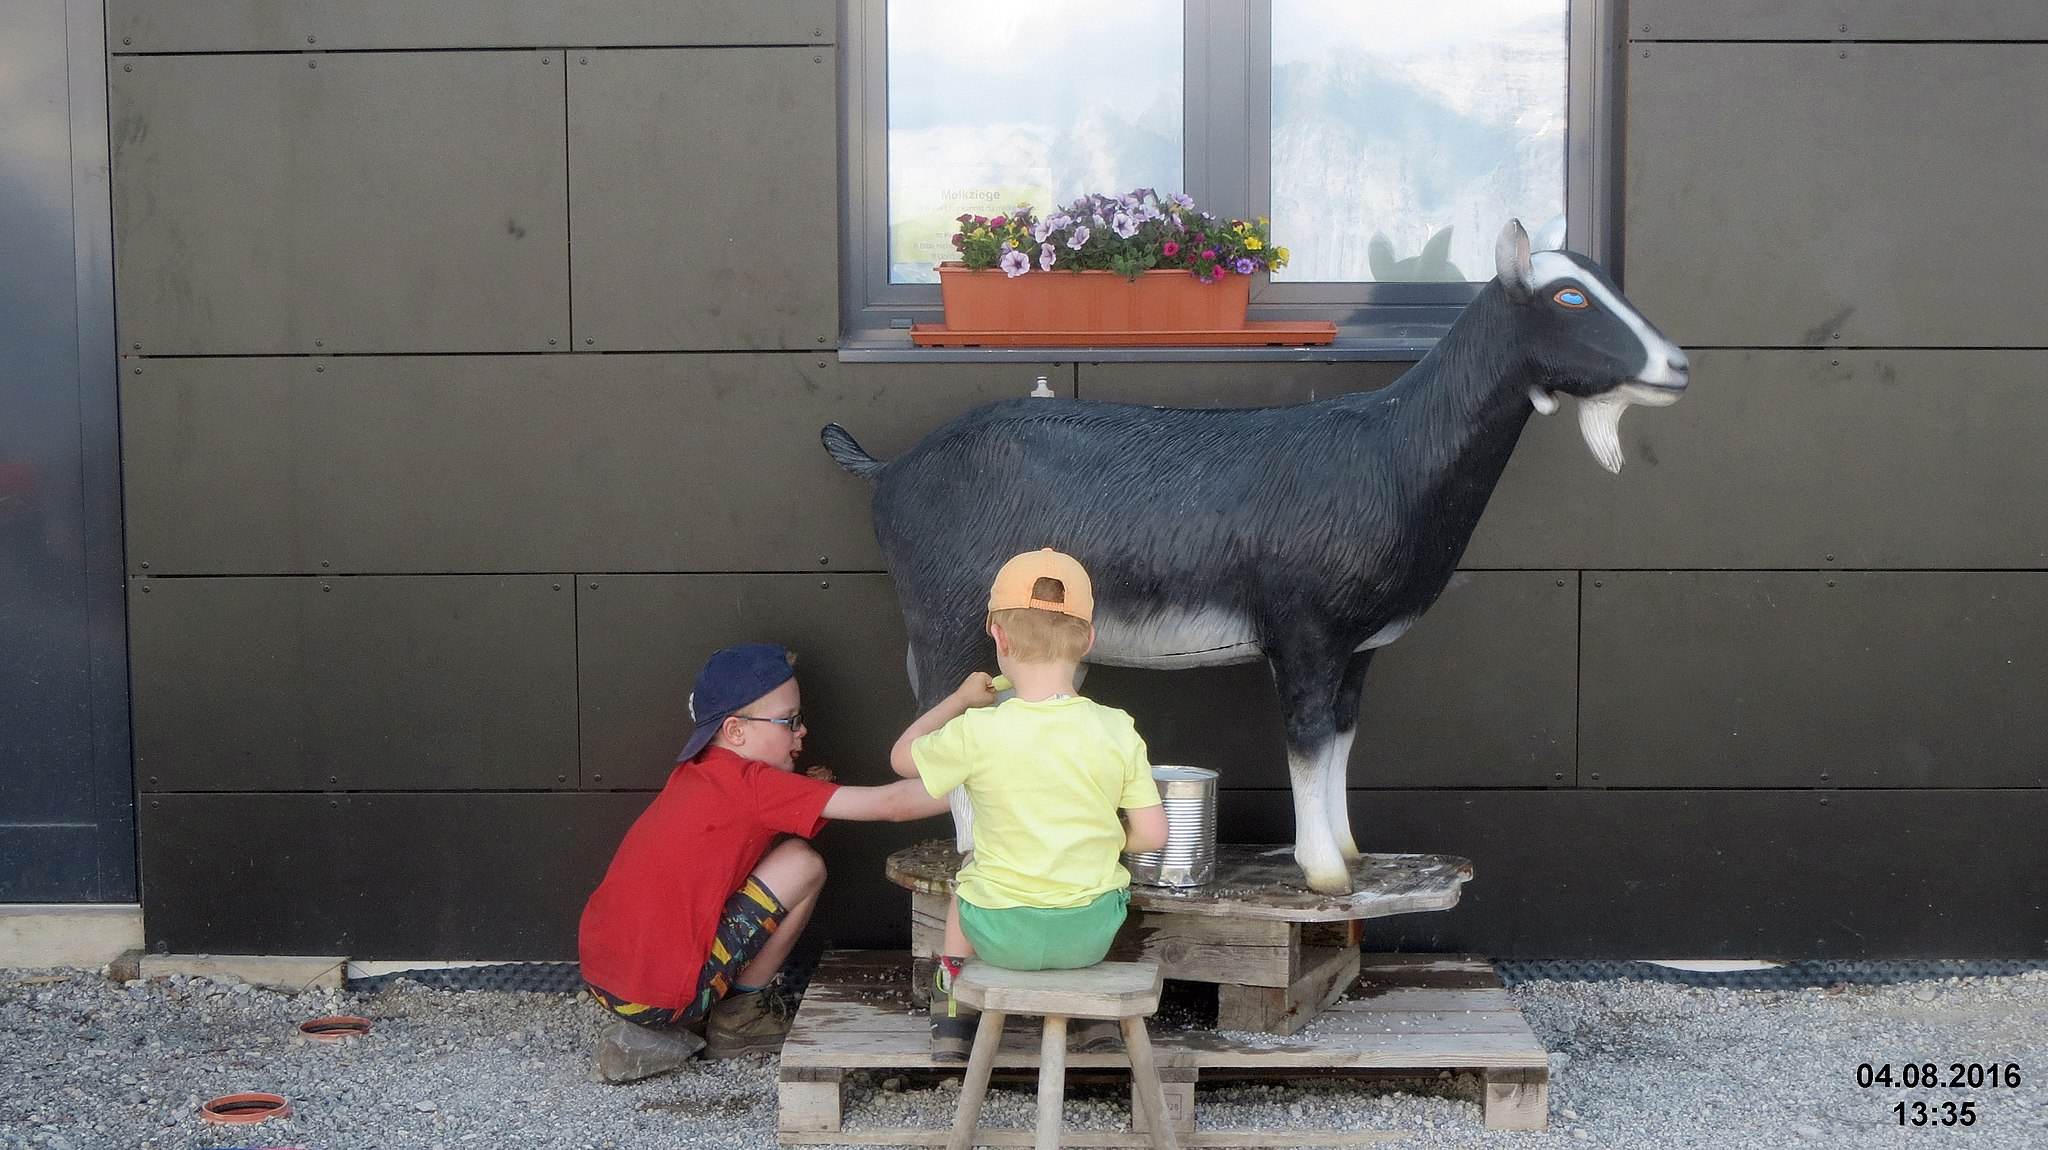 Milking_an_artificial_goat_at_Grubighütte_(31816547712)_WC